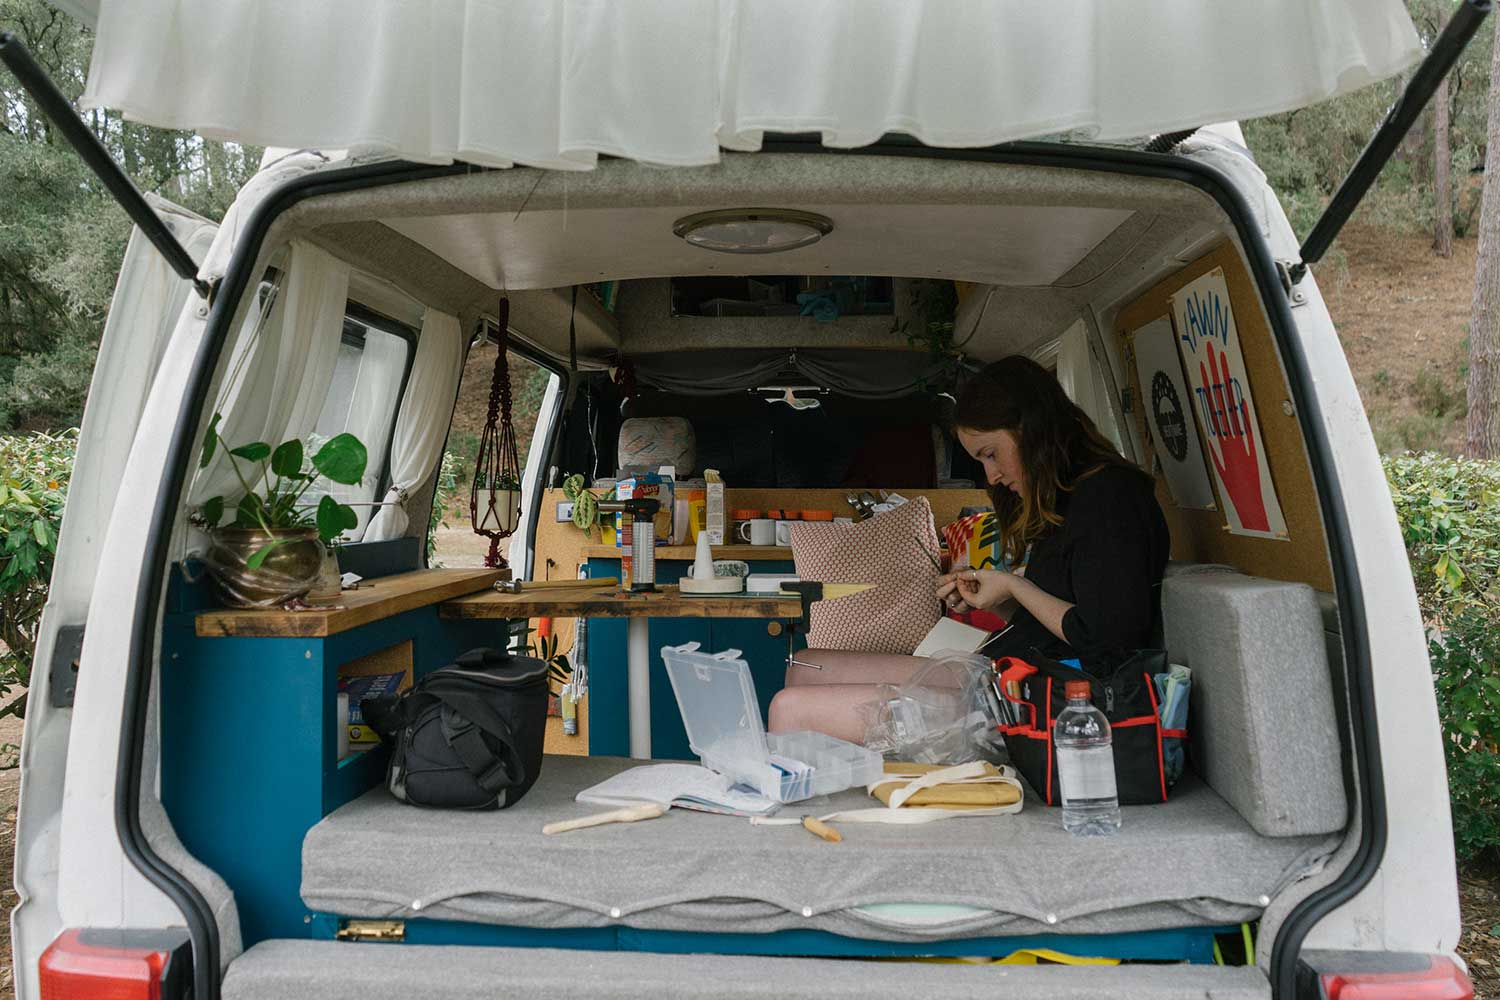 Jewellery making set-up in the back fo the van